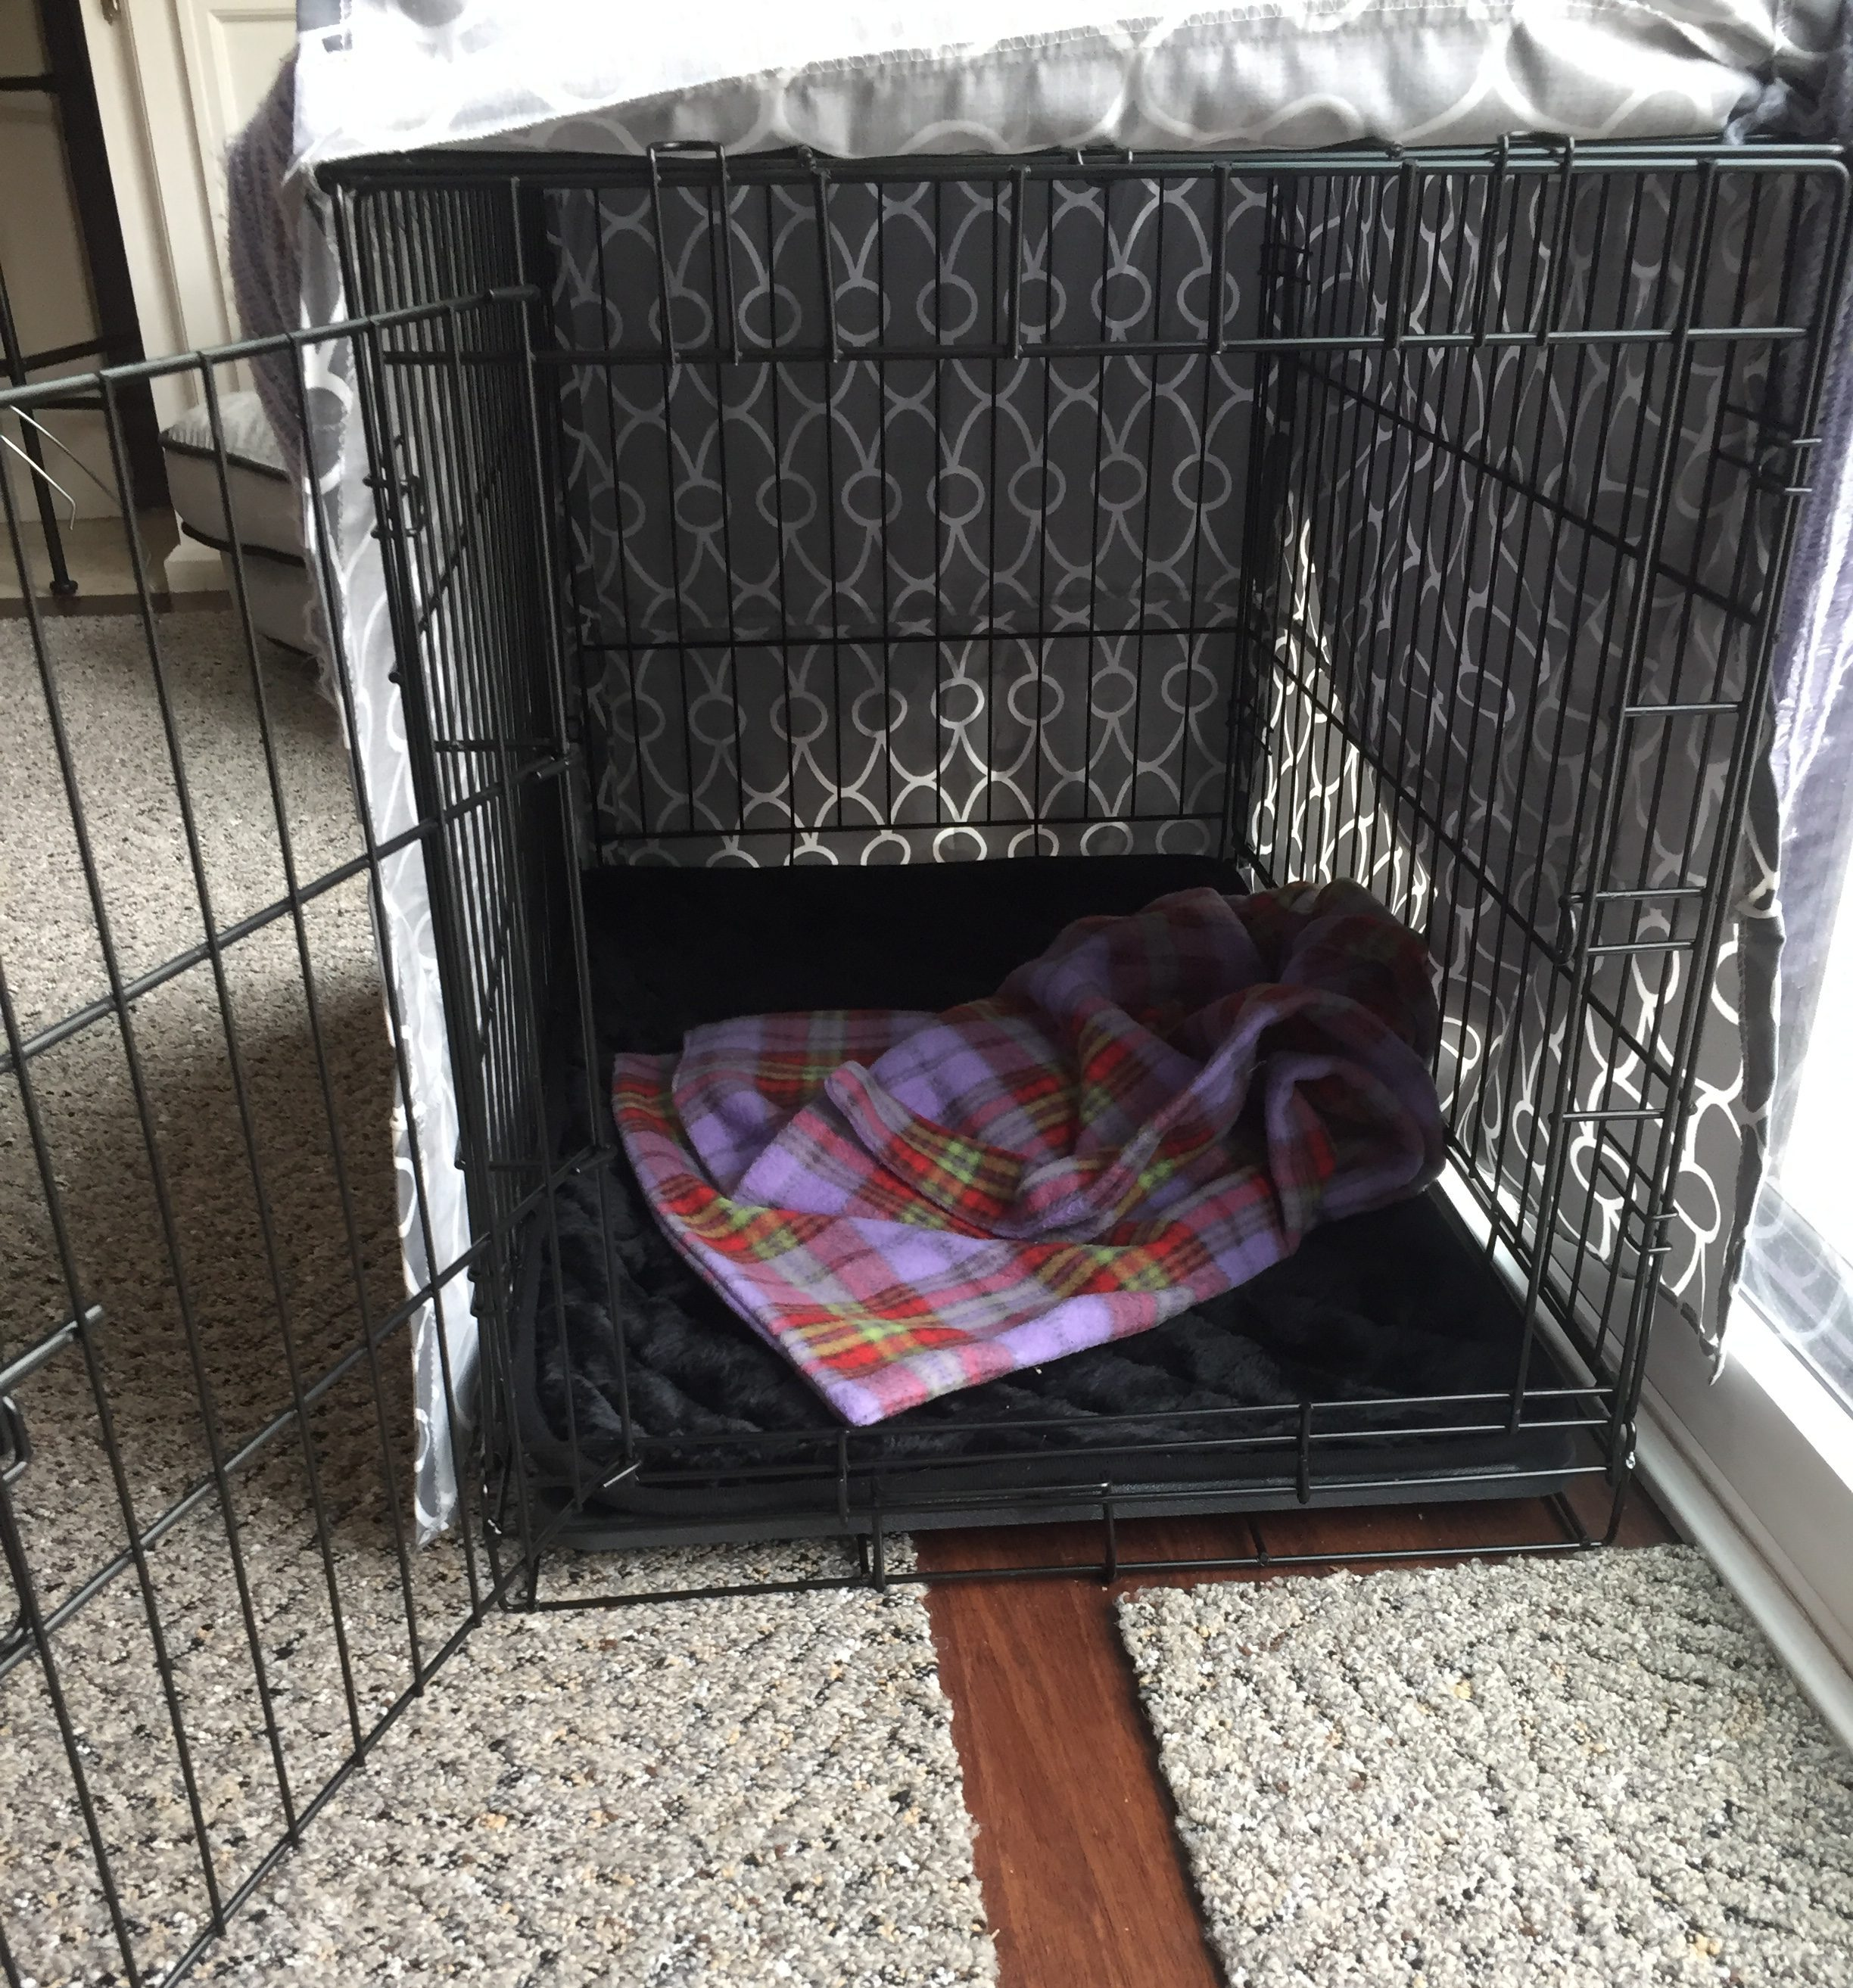 Crate Training Your Puppy - My PWD and Me